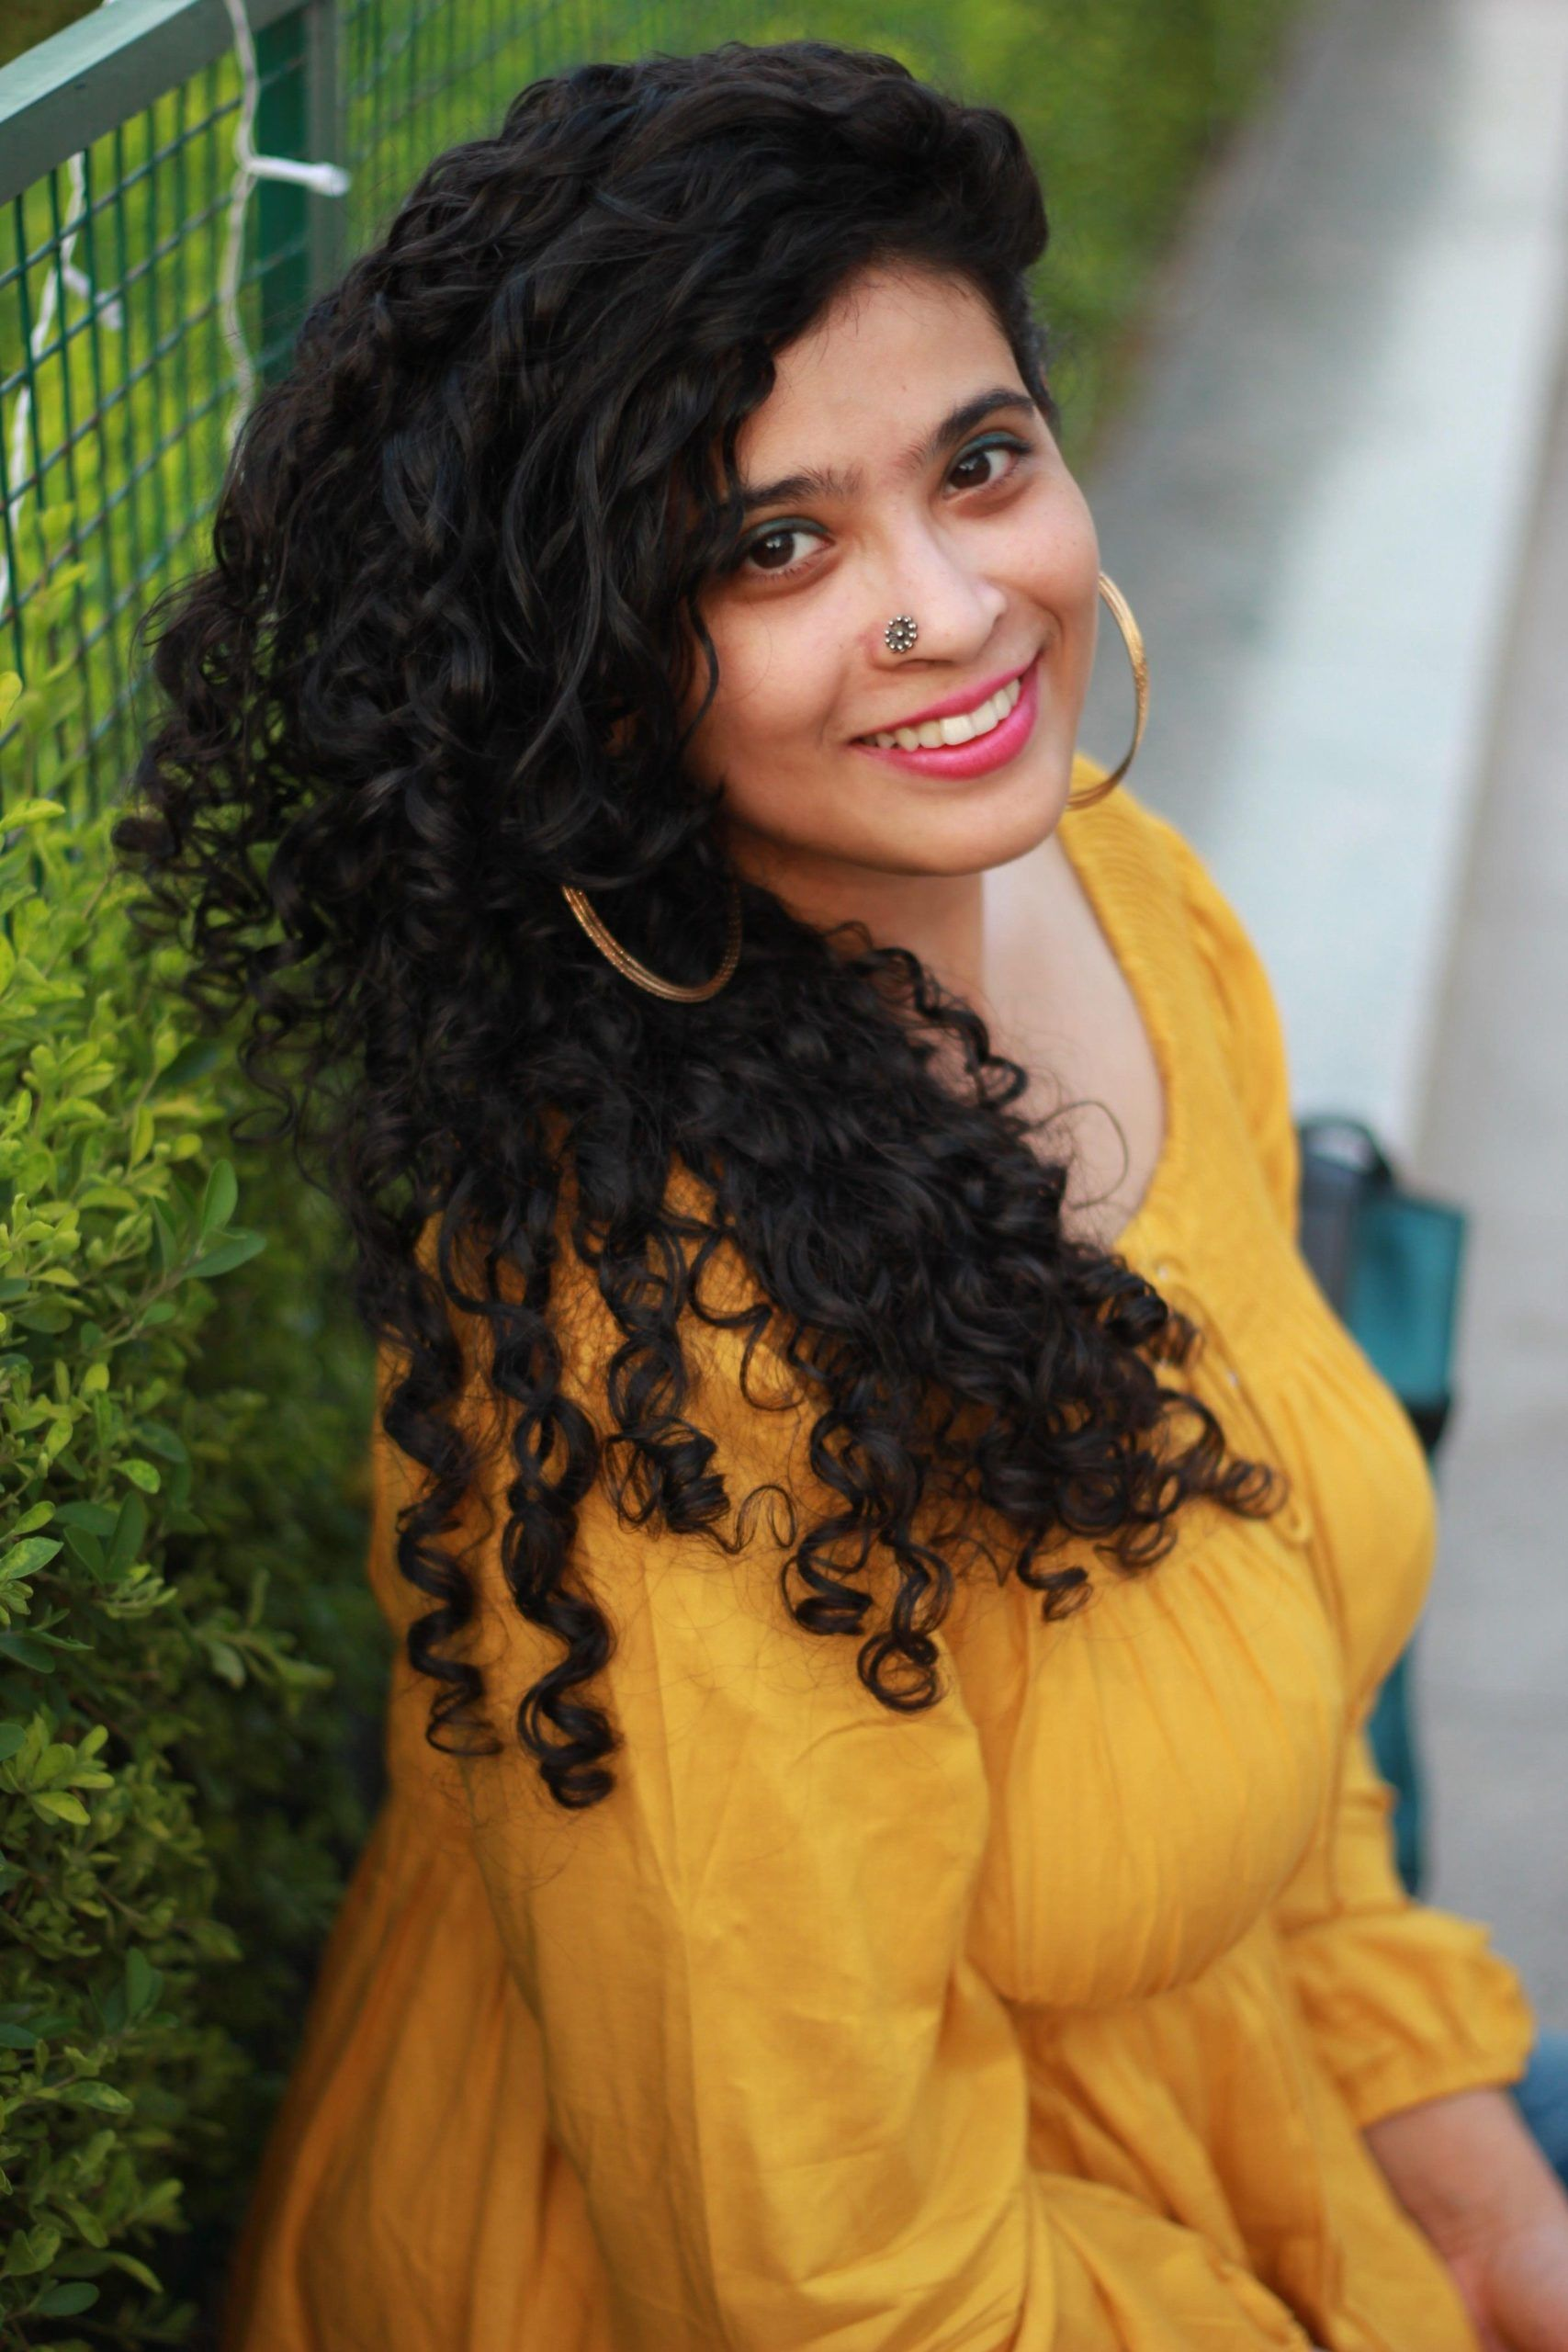 If You Have Wavy Hair, You'll LOVE real life+curly girl's